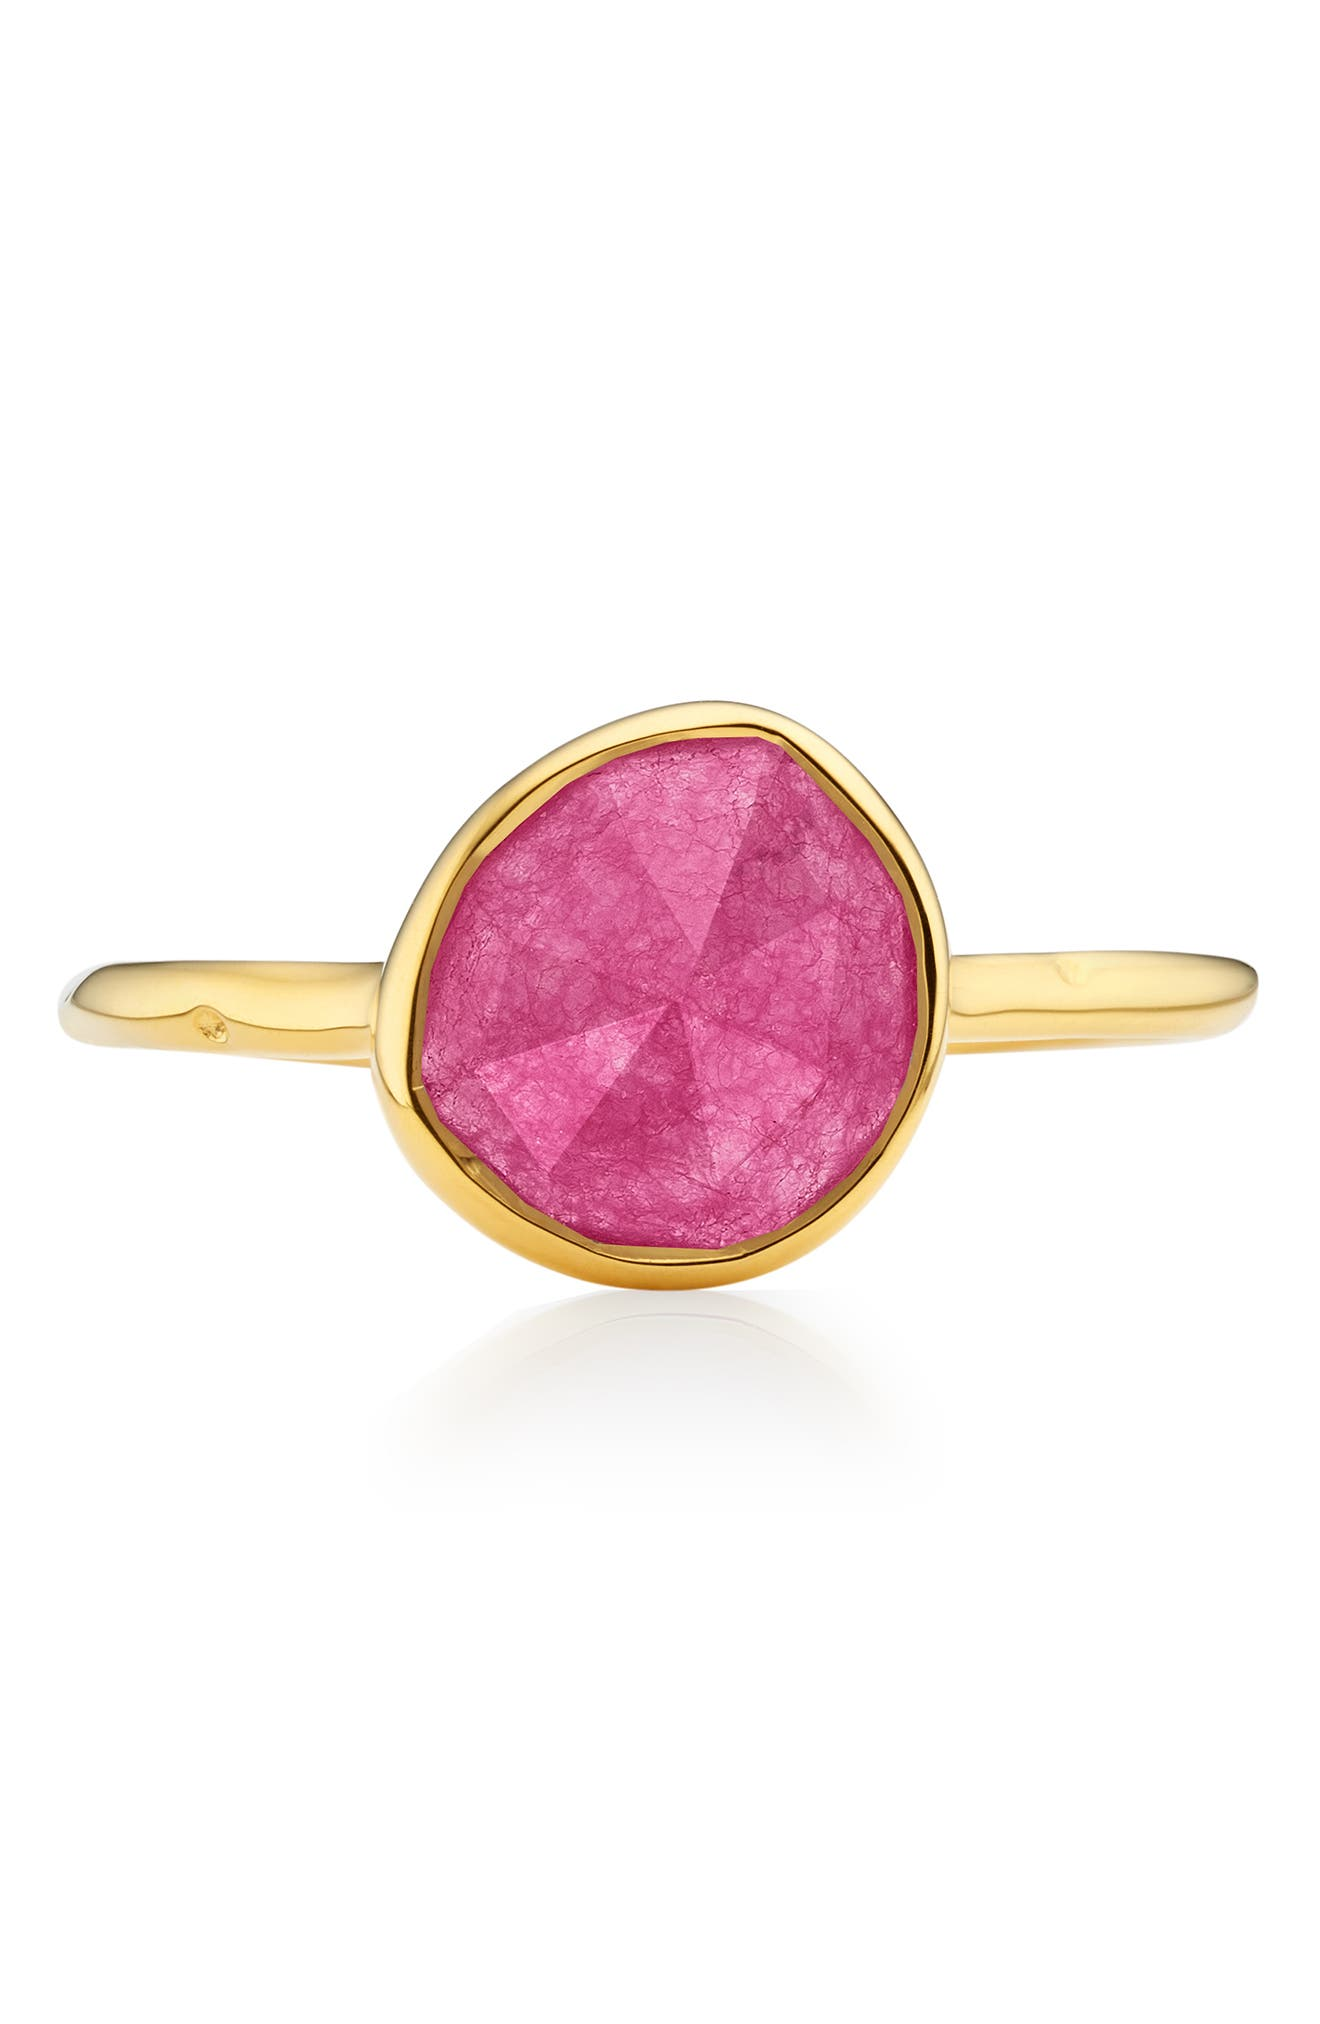 Siren Semiprecious Stone Stacking Ring,                             Alternate thumbnail 4, color,                             GOLD/ PINK QUARTZ